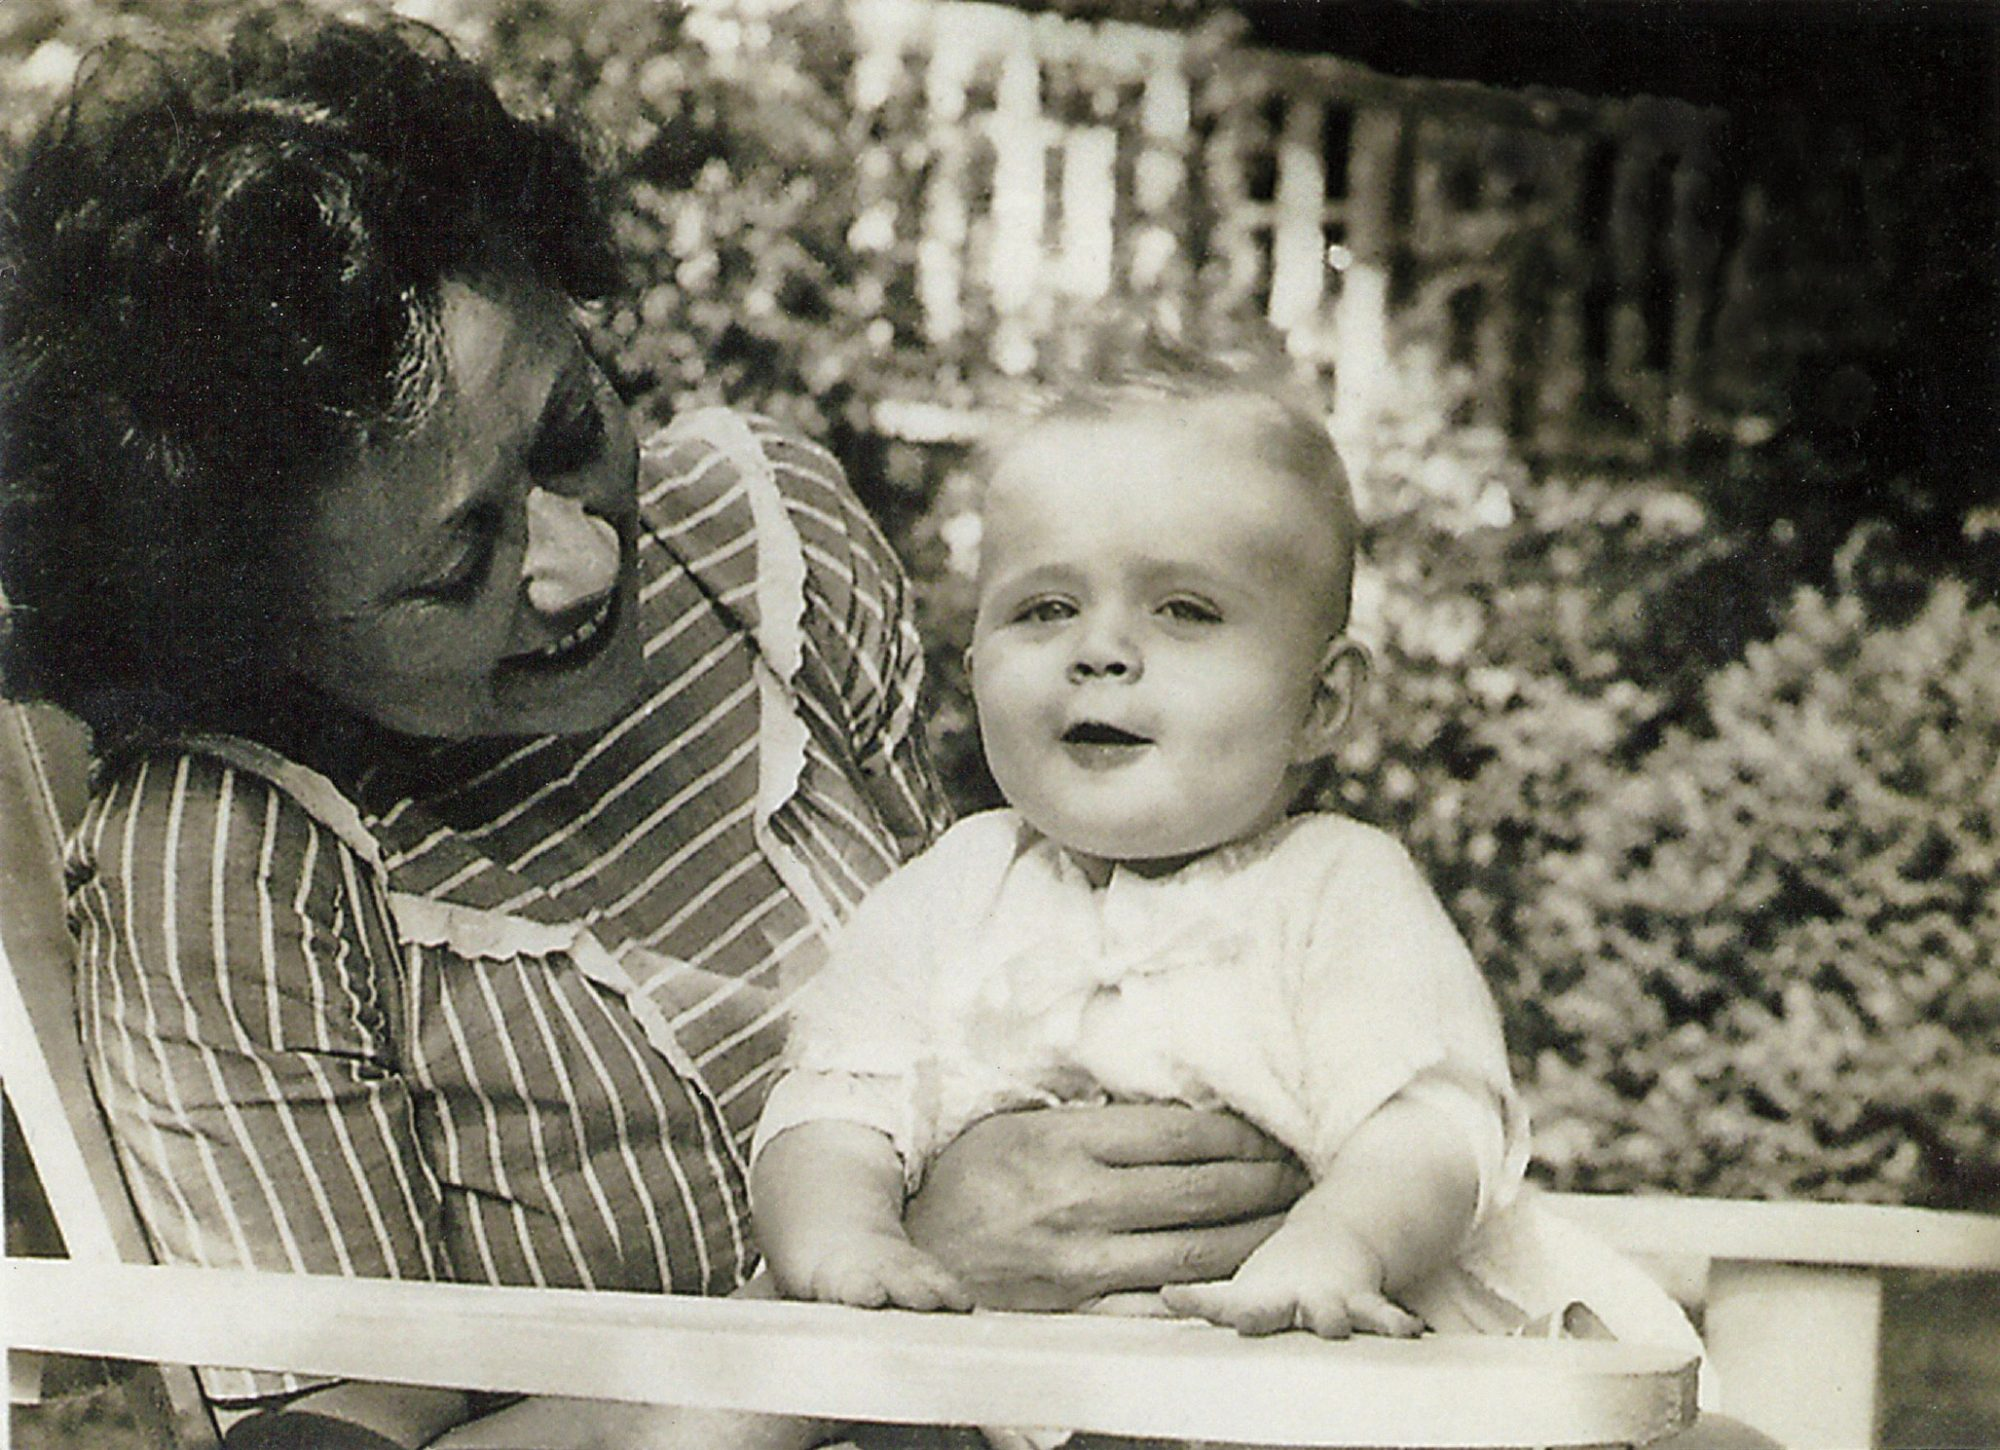 Lee Smith with Mother Gig in 1945